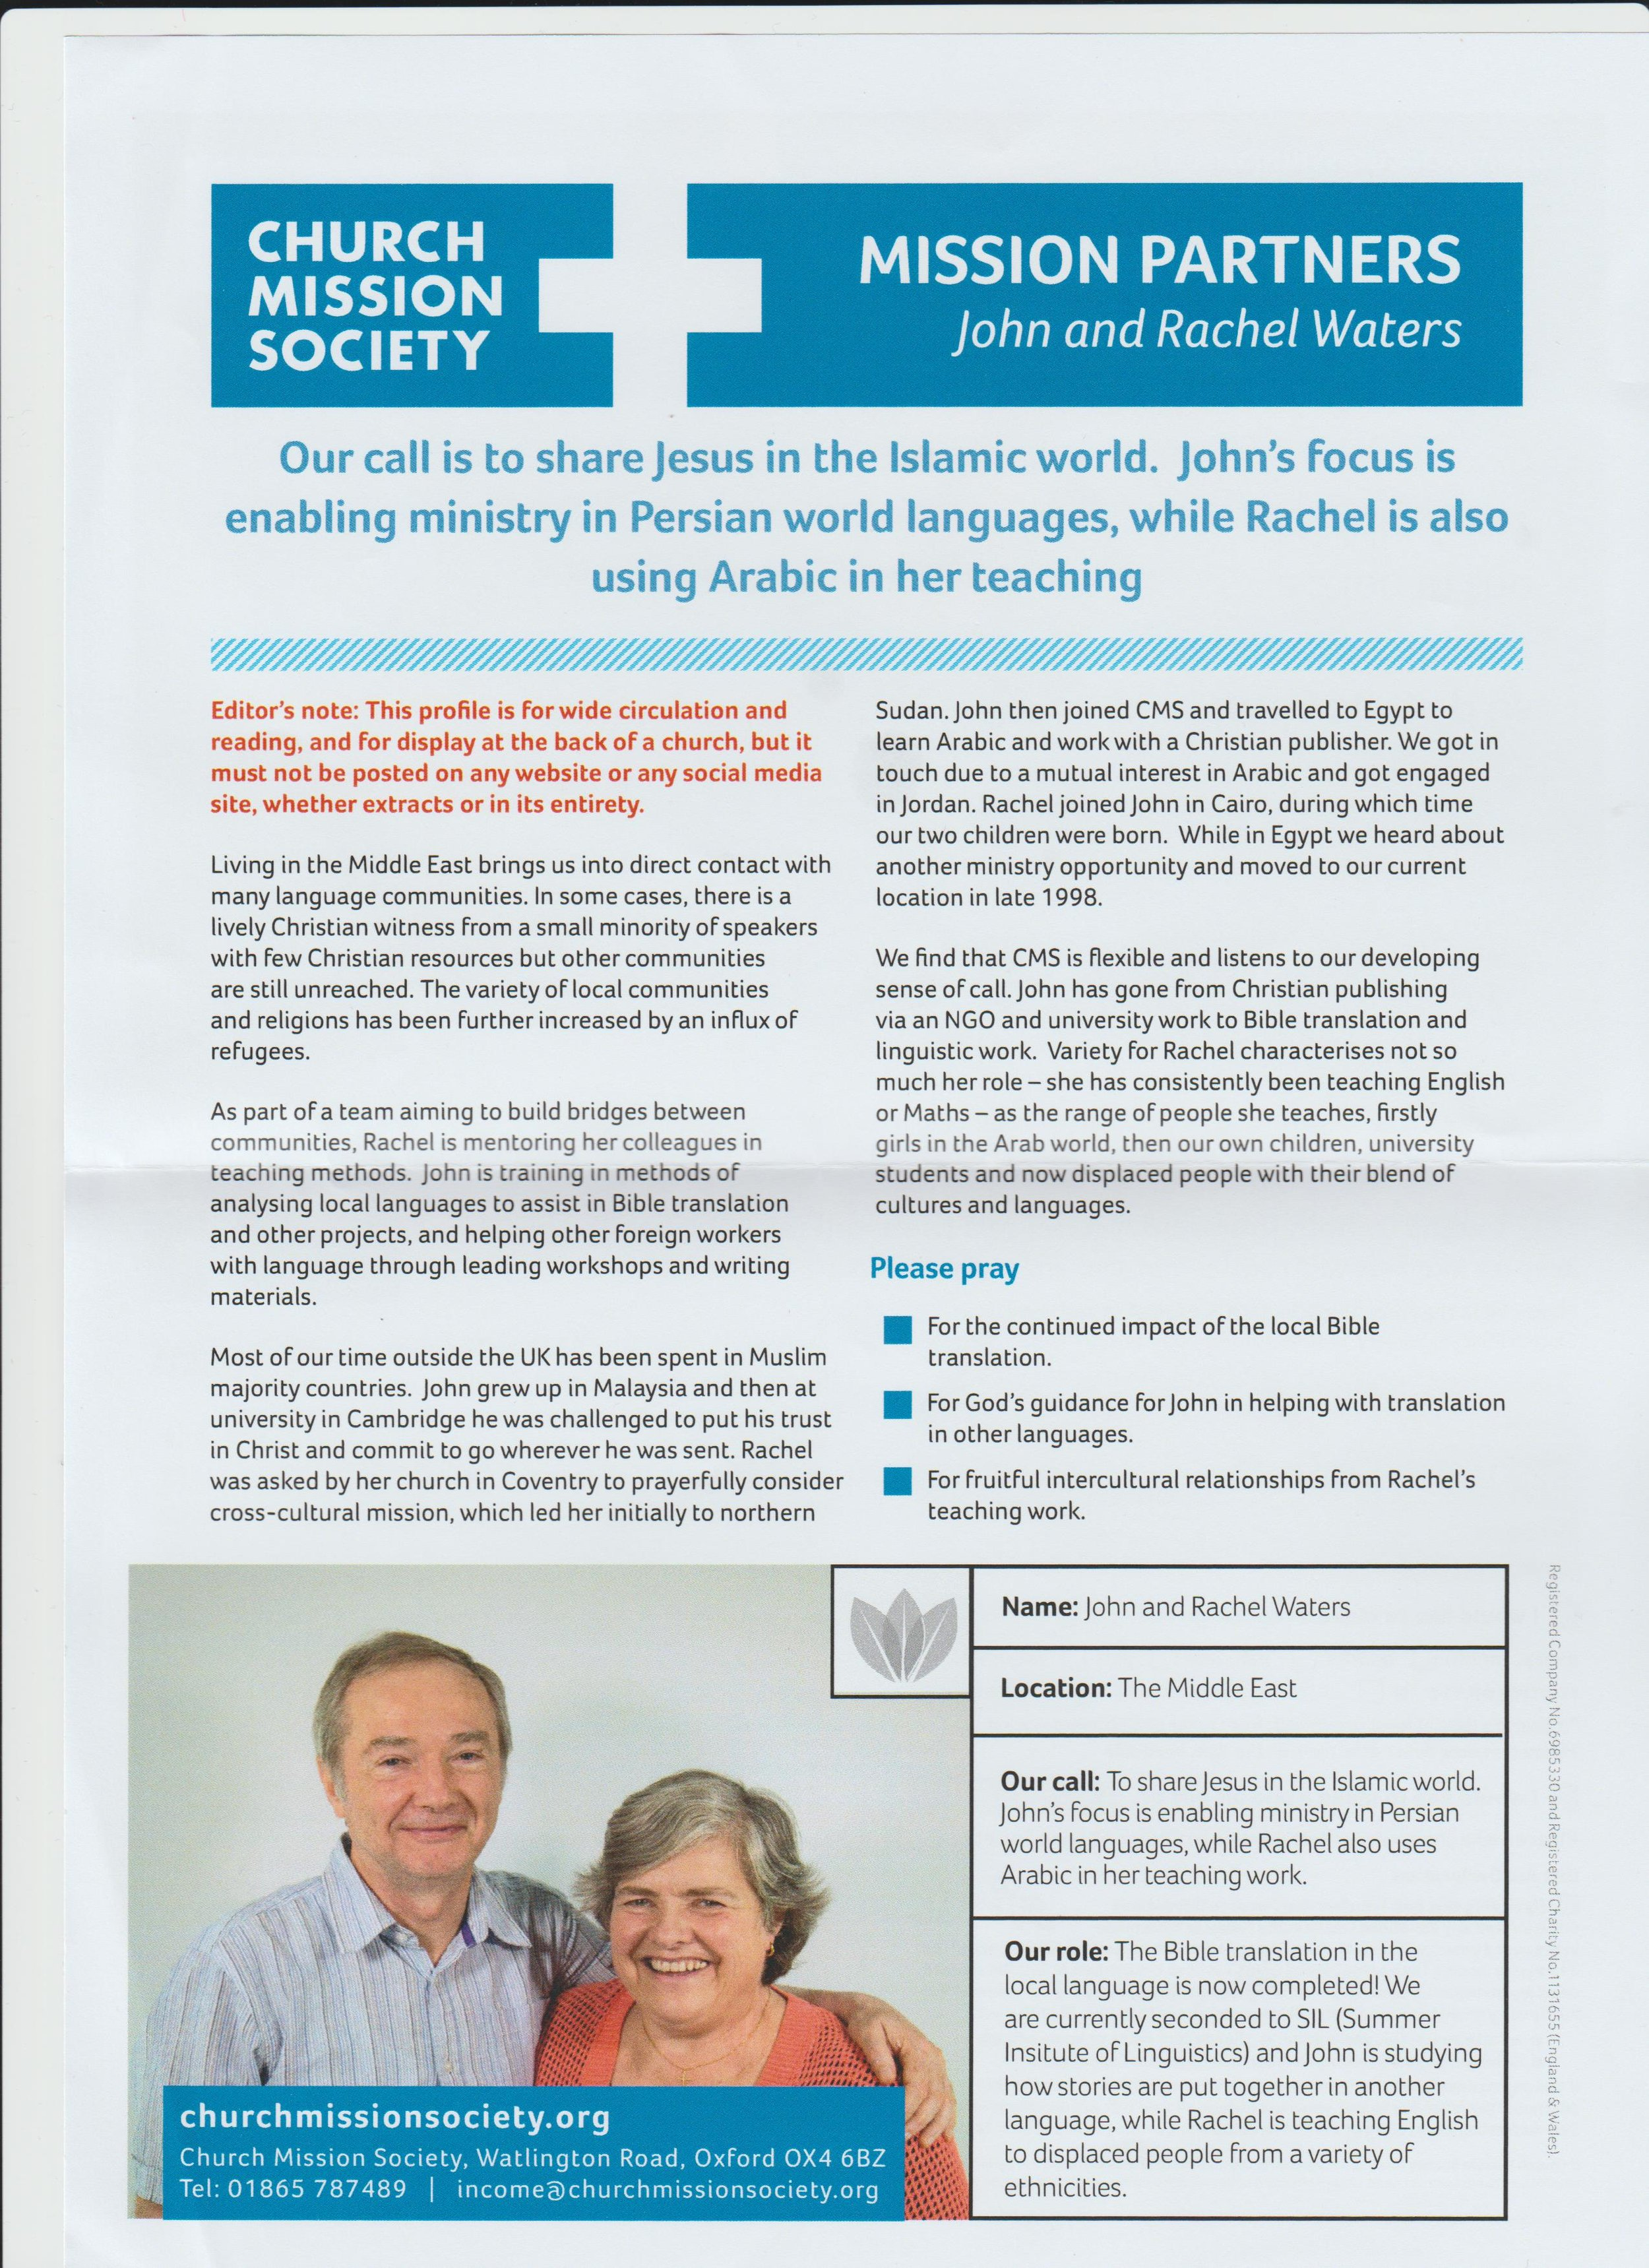 Look at the web-site above to learn more about the work John and Rachel Walters do in the Middle East.